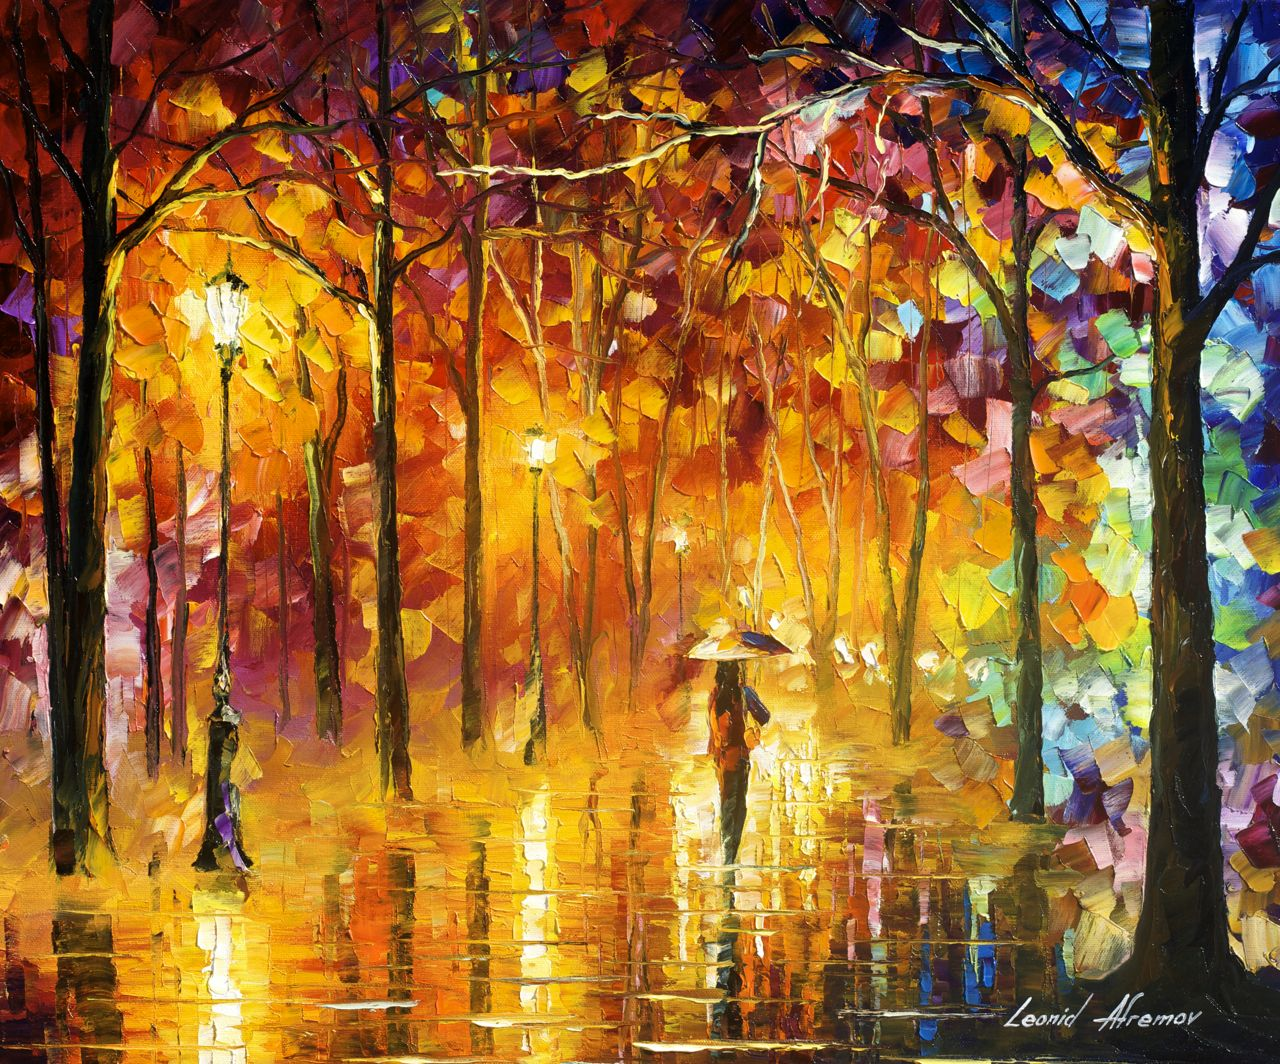 Signals Of Love by Leonid Afremov